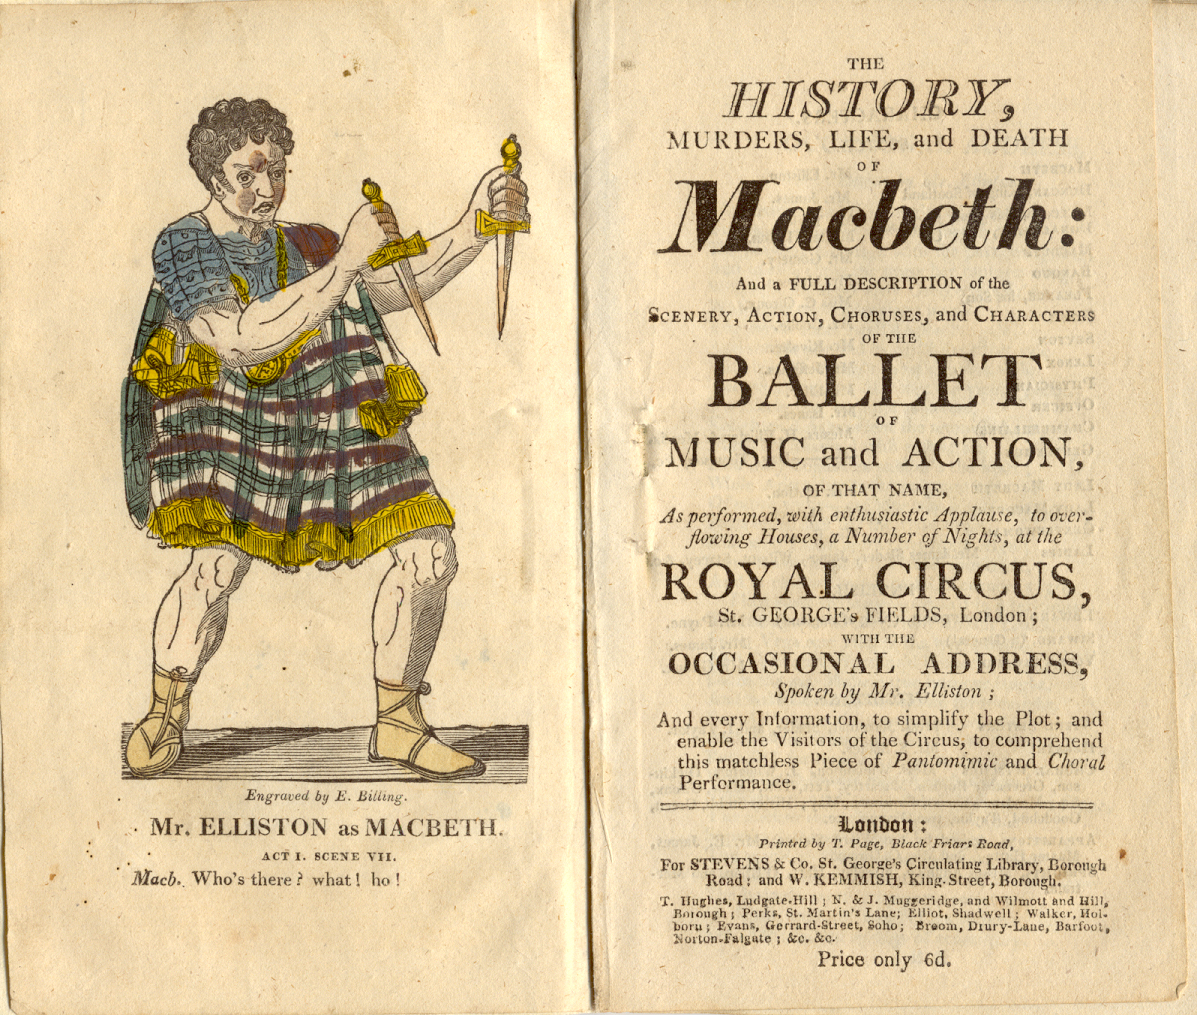 Title page for a ballet version of Macbeth, complete with am illustration of Macbeth holding two daggers. from the Pettingell collection.